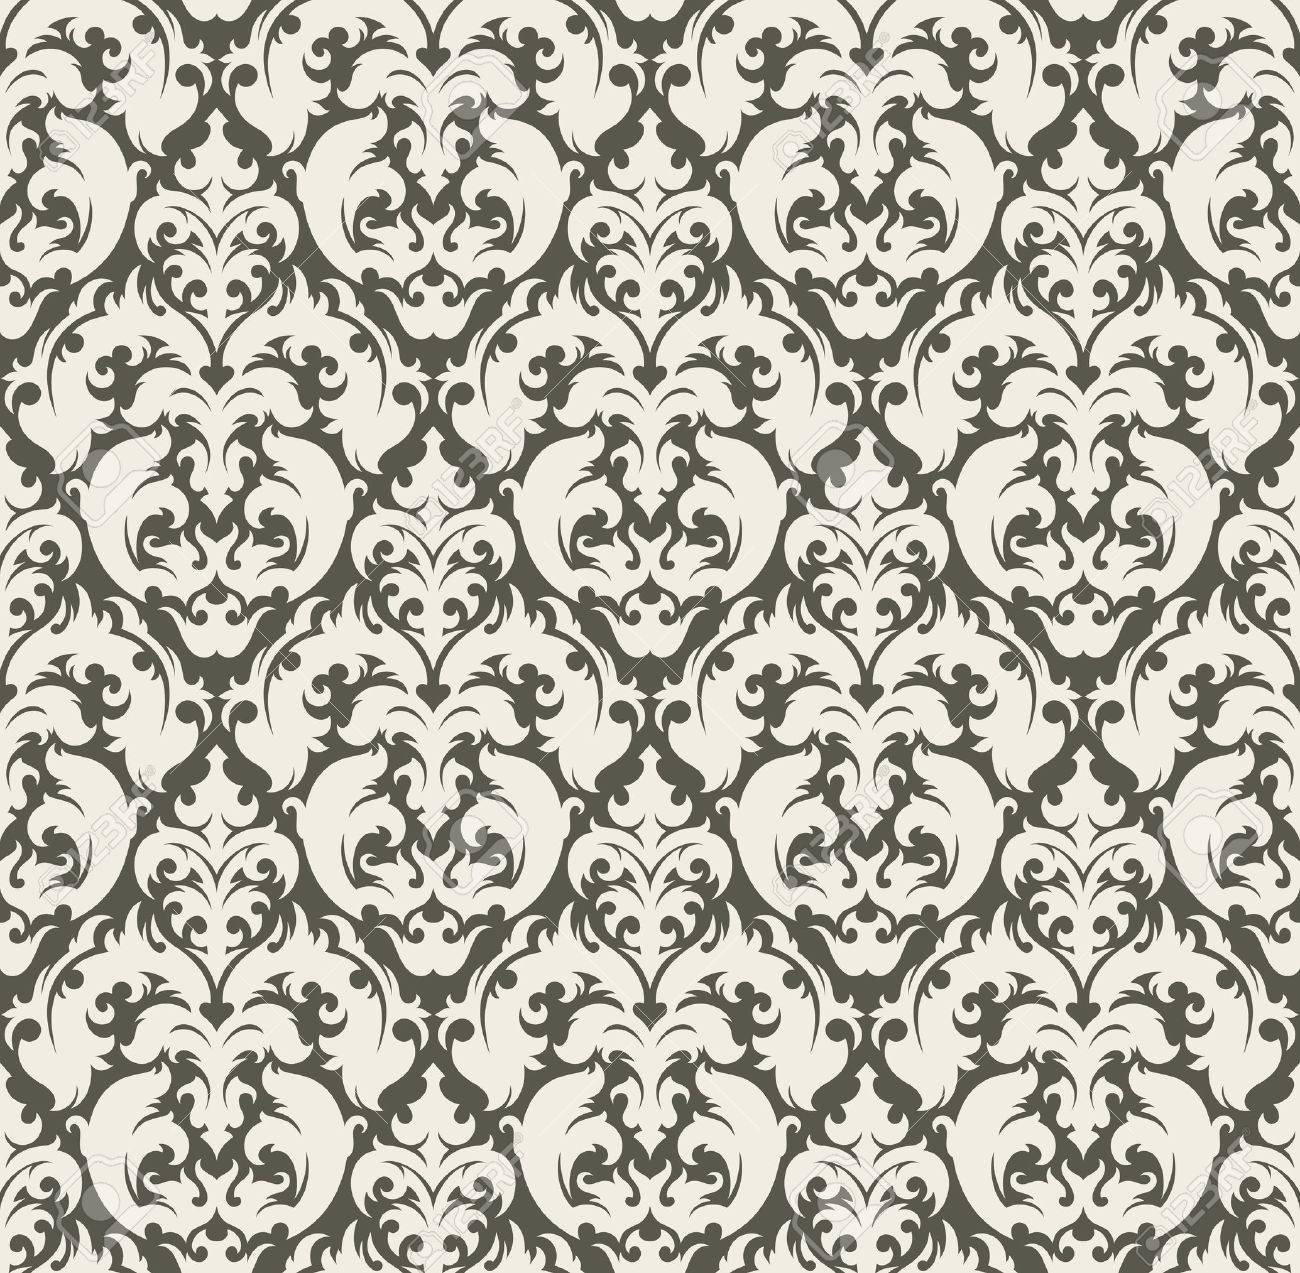 Seamless background from a floral ornament, Fashionable modern wallpaper or textile - 7087826